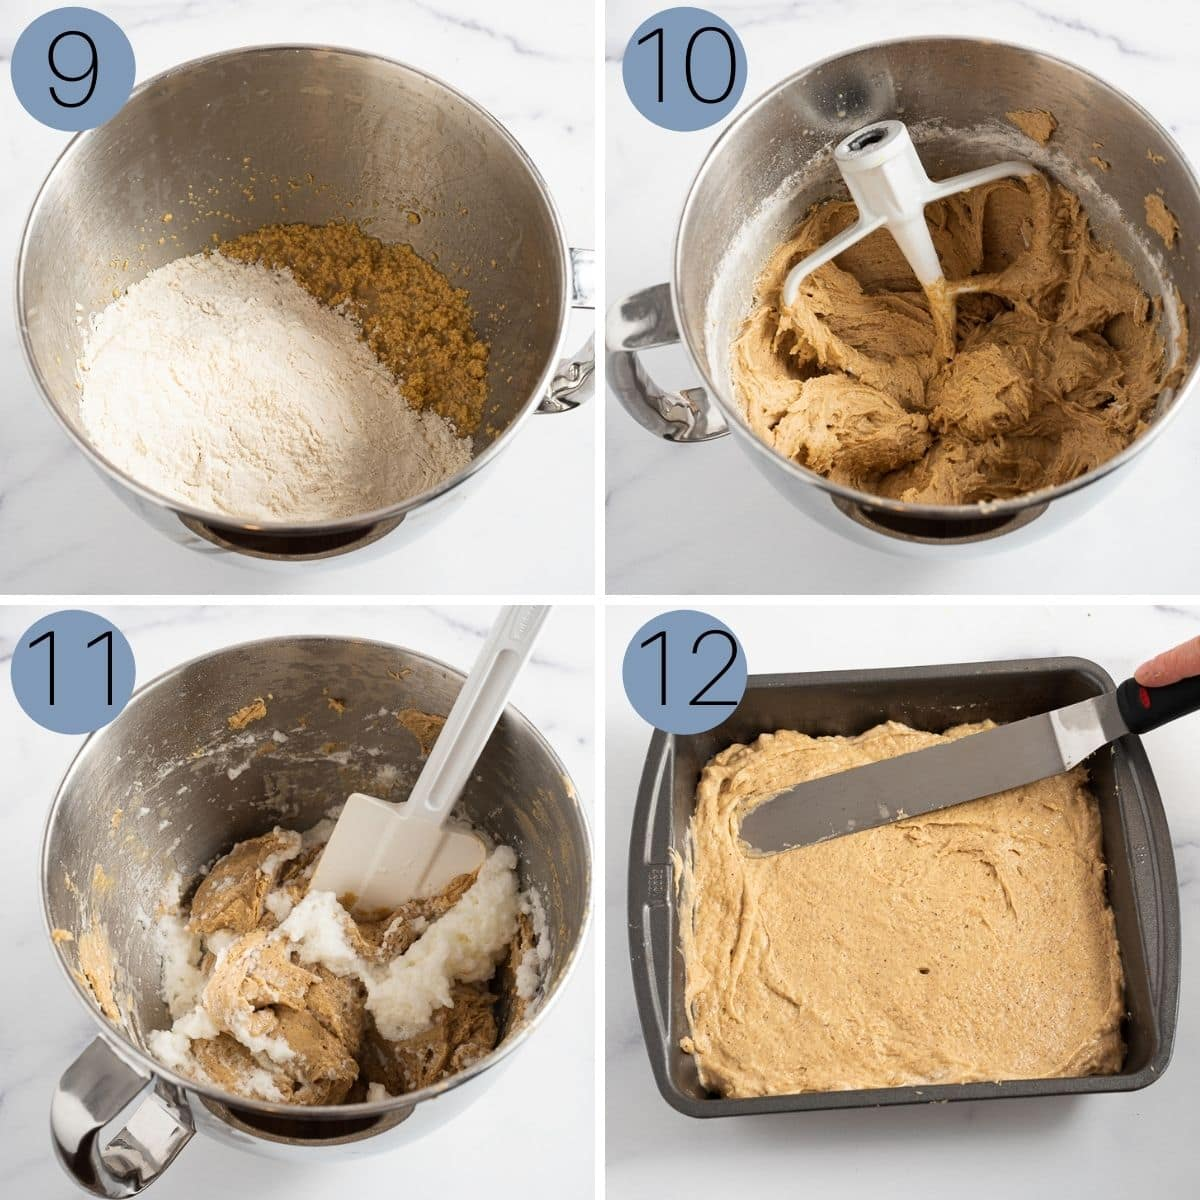 steps 9 to 12 of making the spice cake recipe